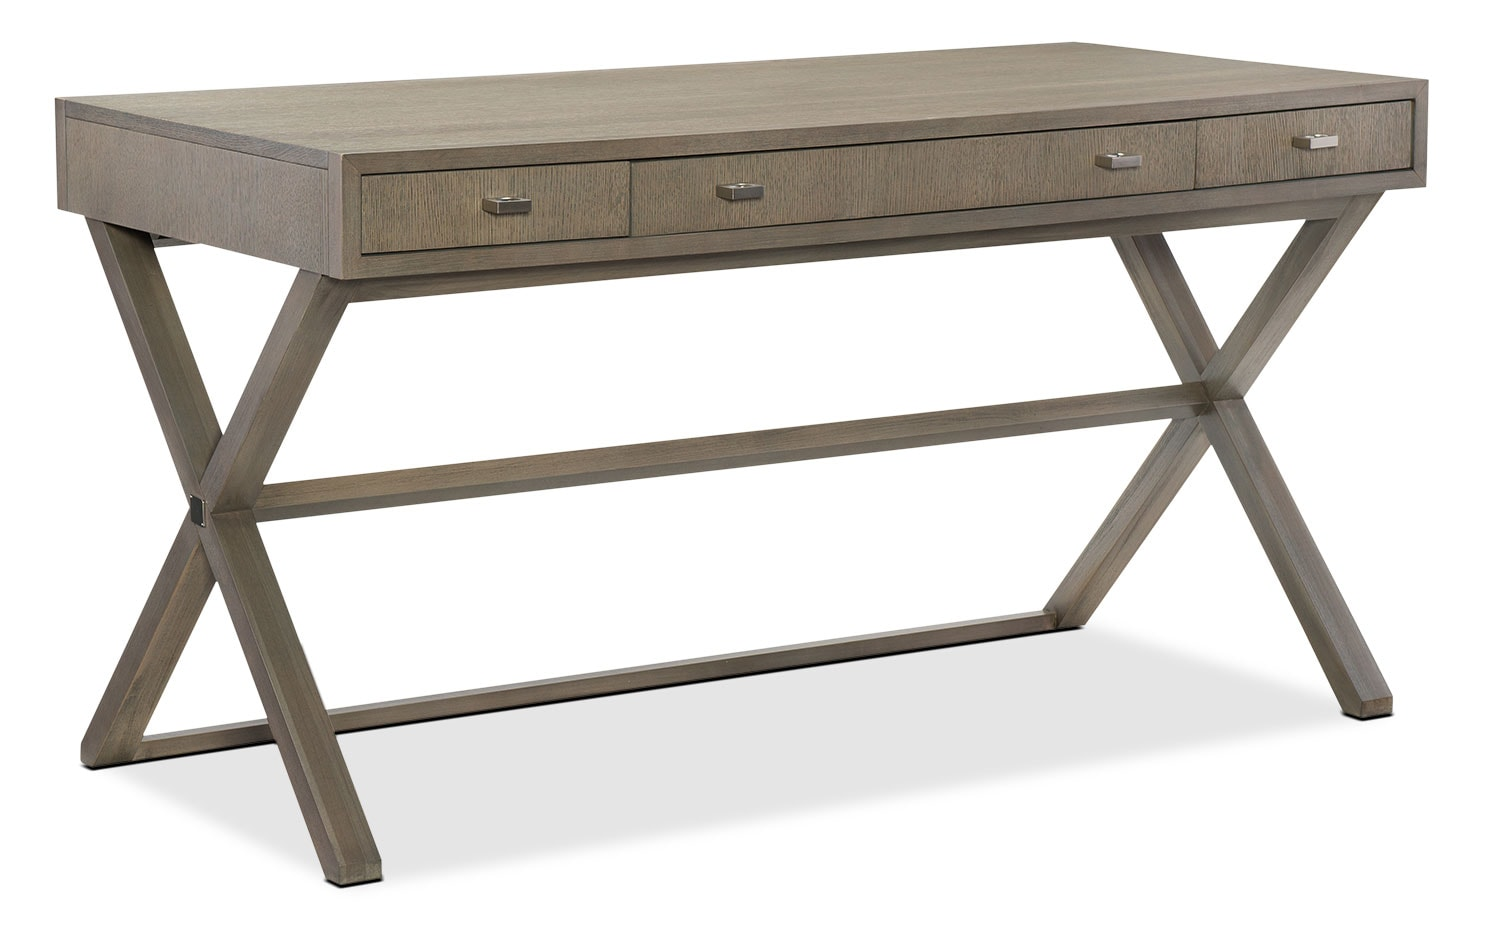 Dining Room Furniture - Rachael Ray Highline Desk - Greige